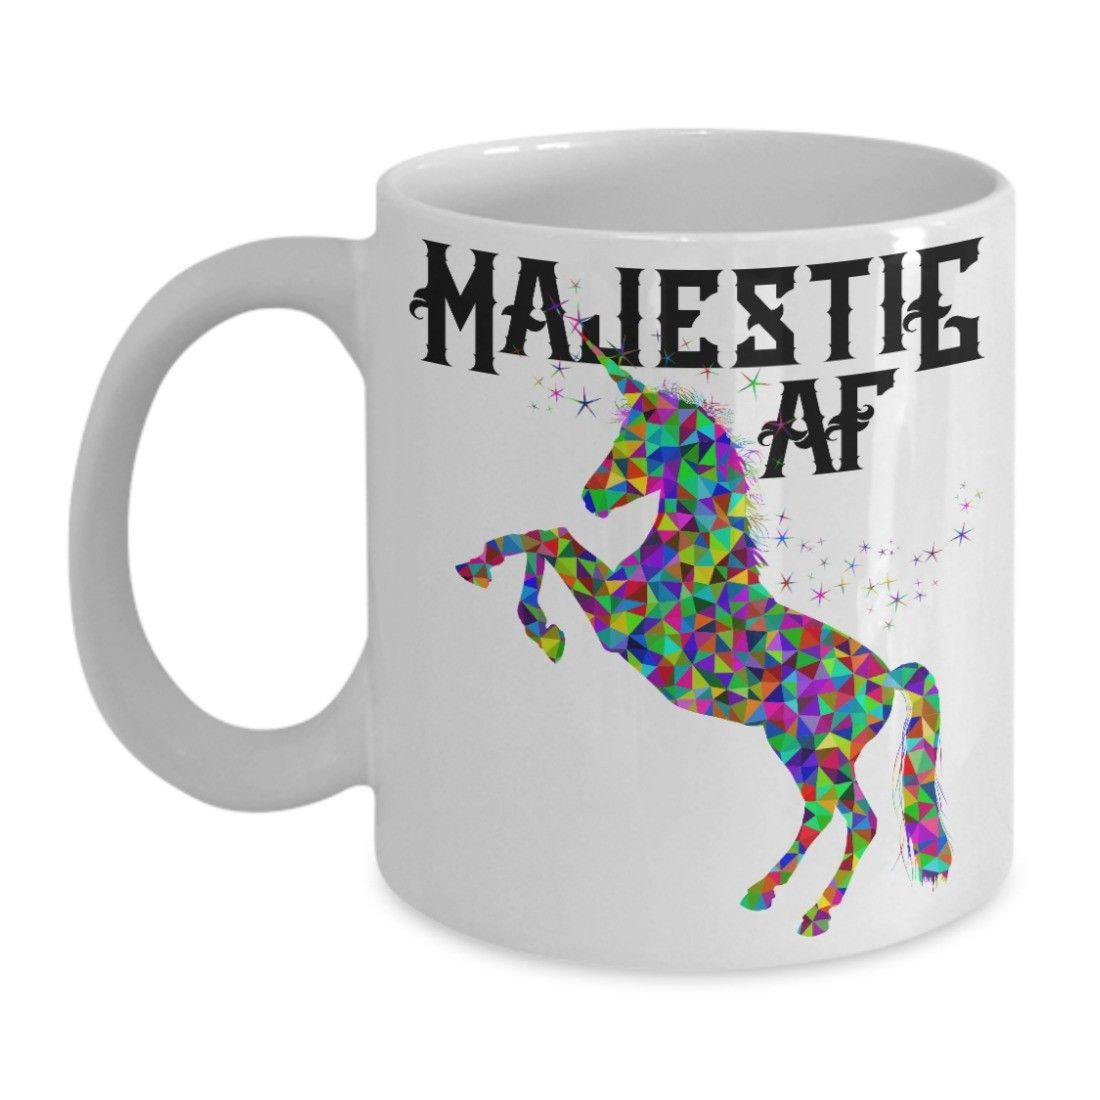 Majestic AF Mug Unicorn Cup Coffee Gift Idea Mom Wife Girlfriend Ceramic White